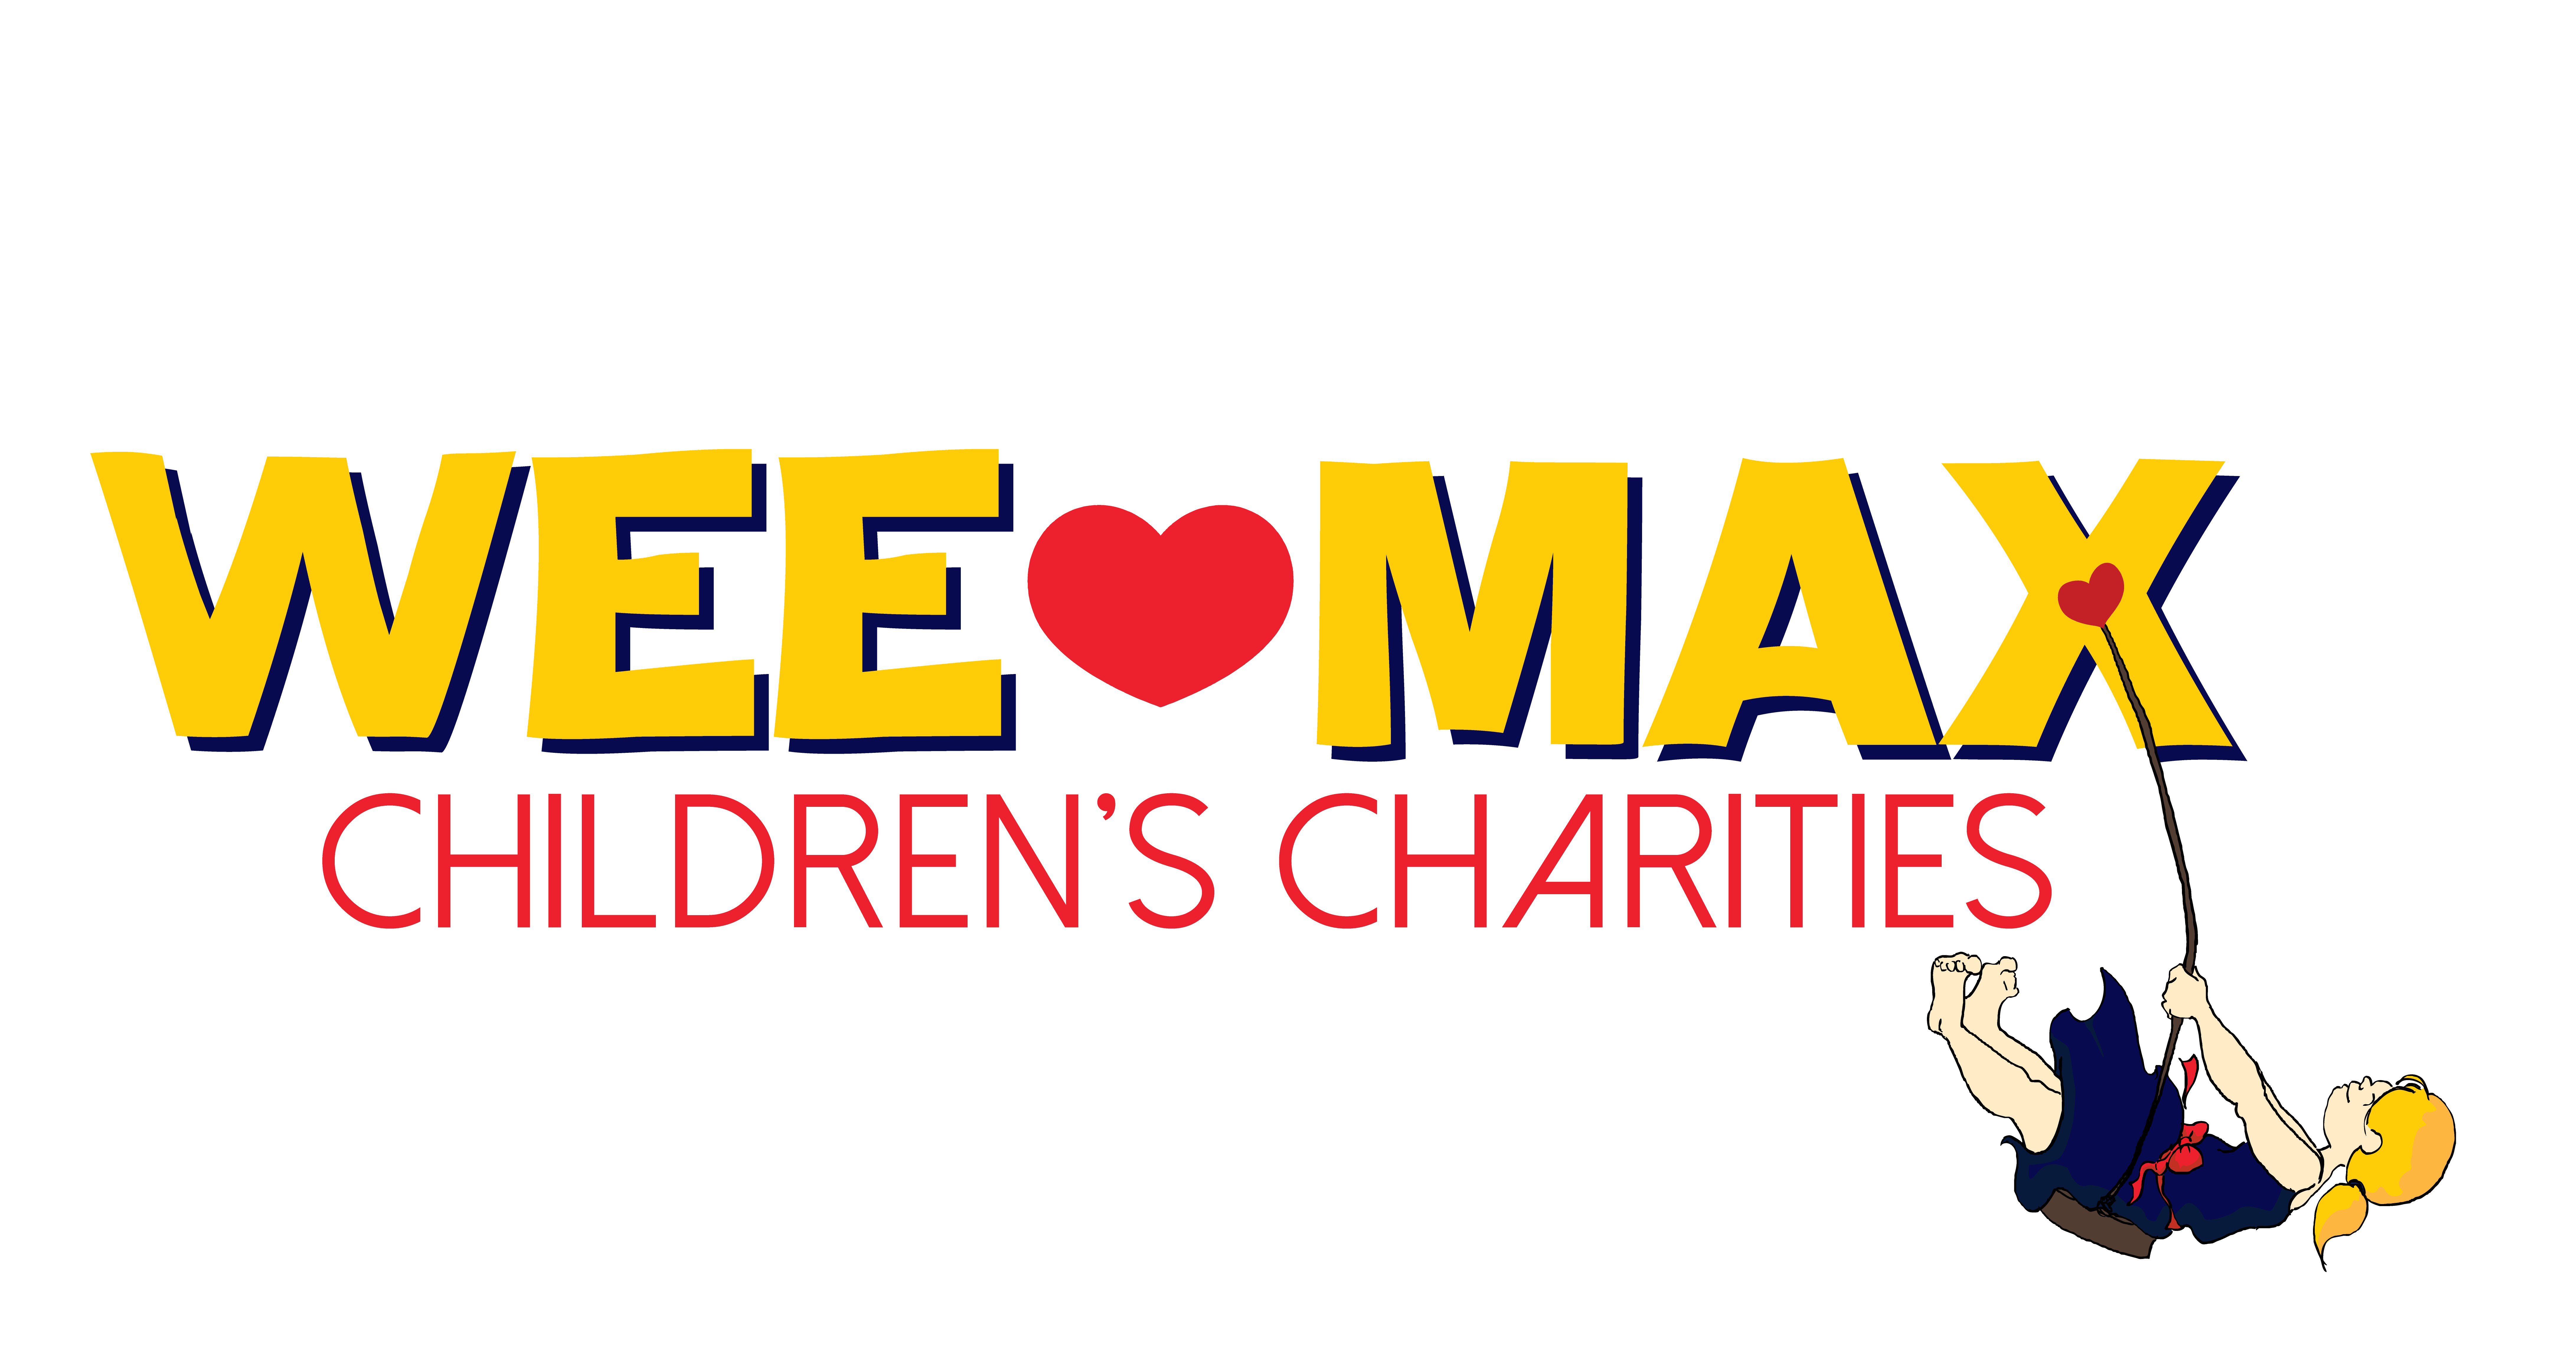 Wee Max Children's Charities